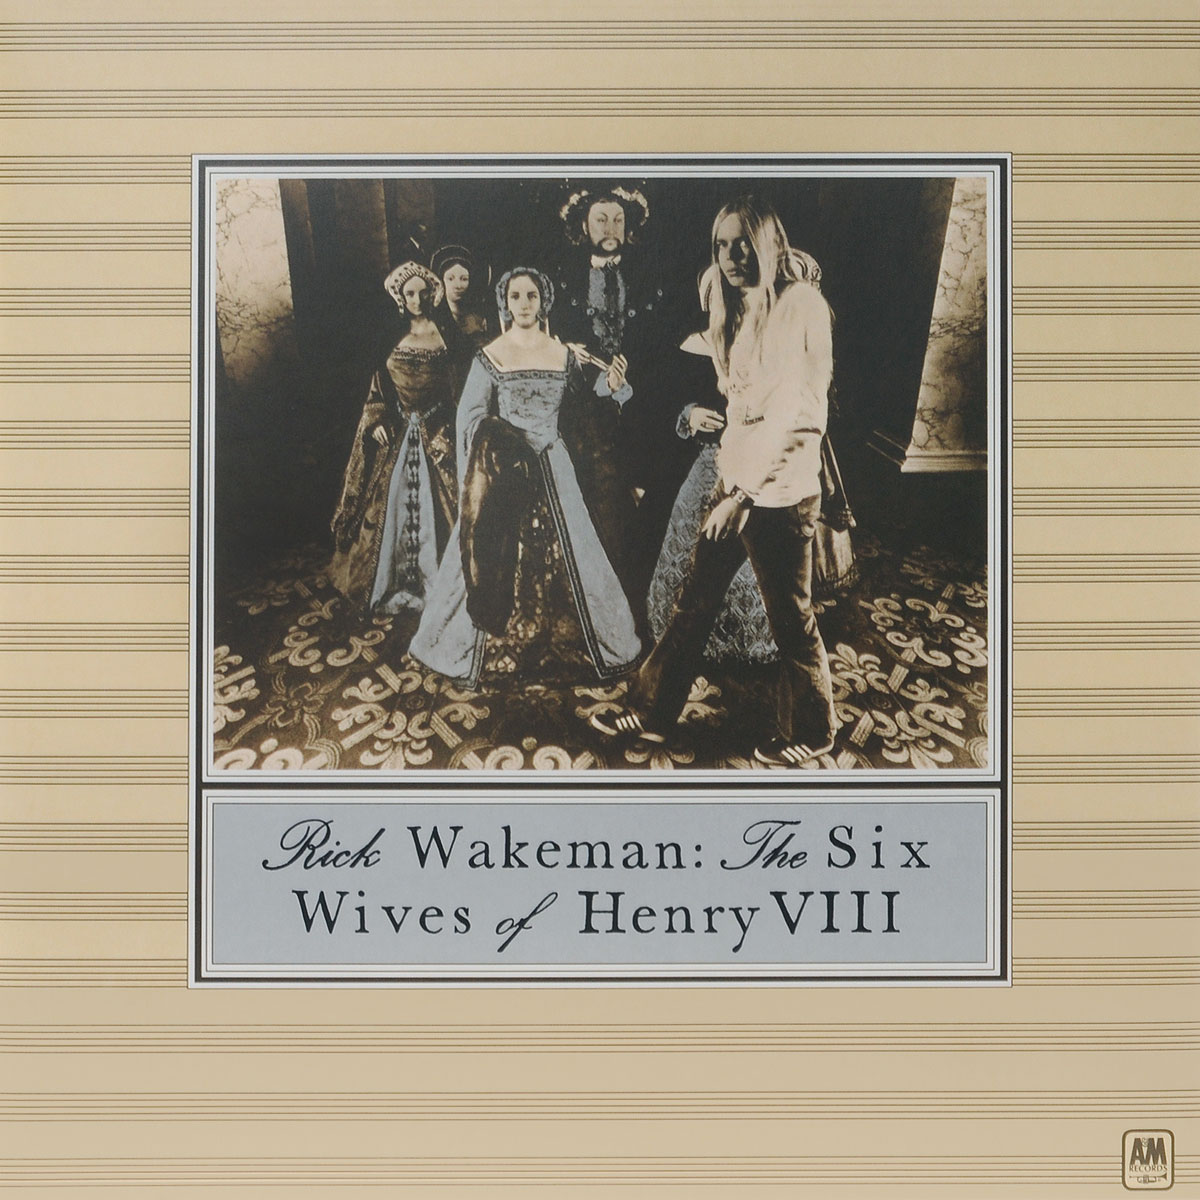 henry viii Рик Уэйкман Rick Wakeman. The Six Wives Of Henry VIII (LP)